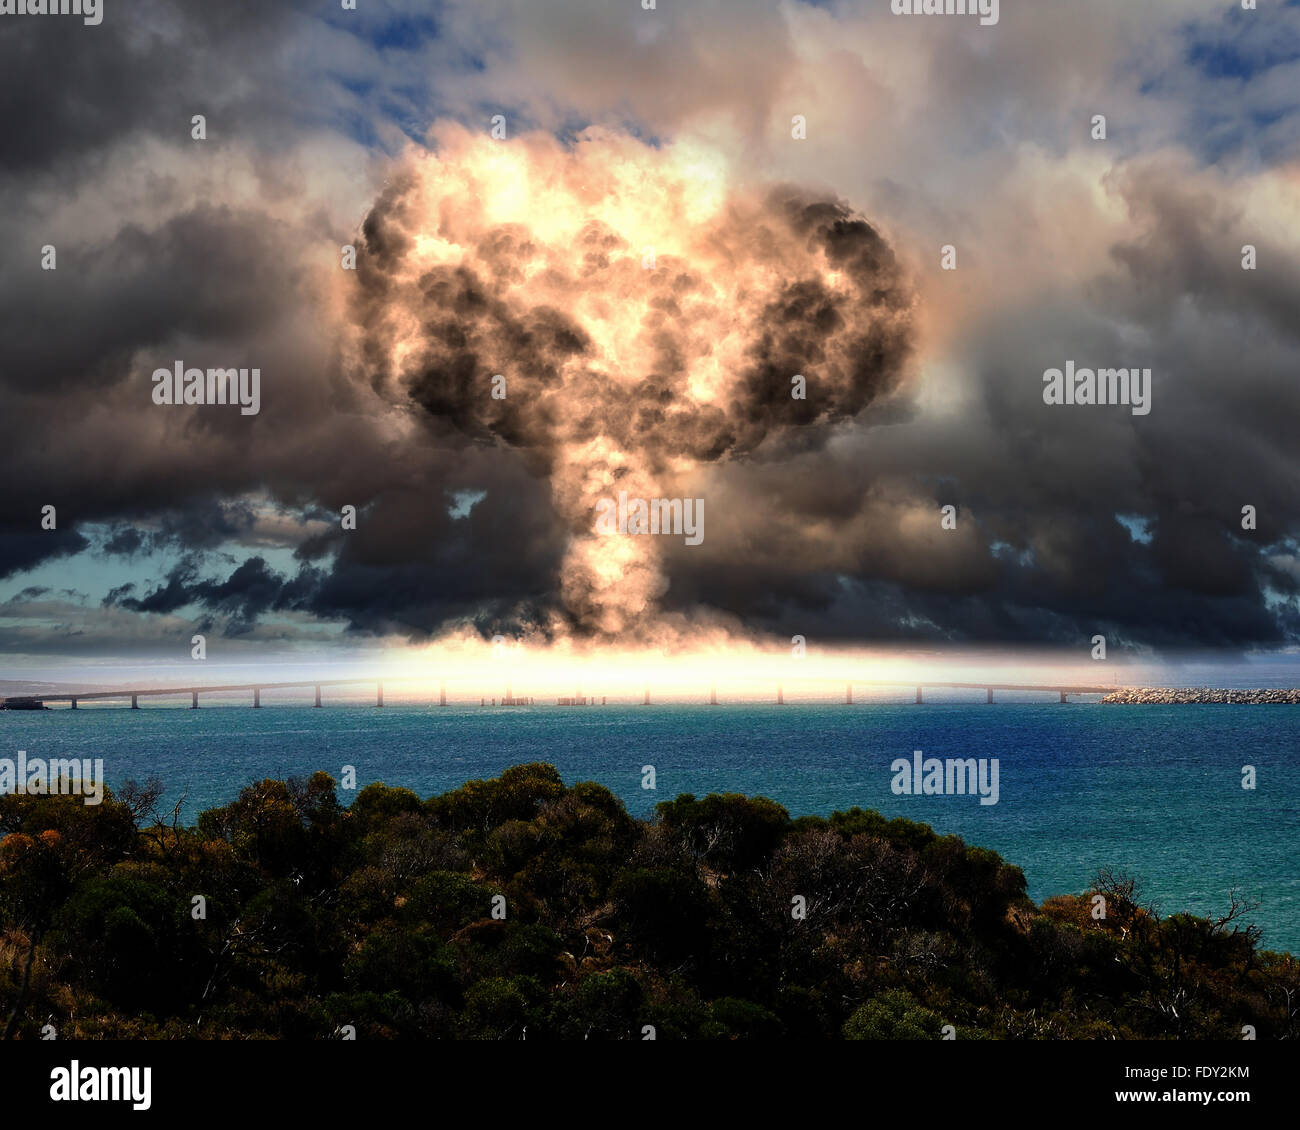 Nuclear explosion in an outdoor setting. Symbol of environmental protection and the dangers of nuclear energy. - Stock Image